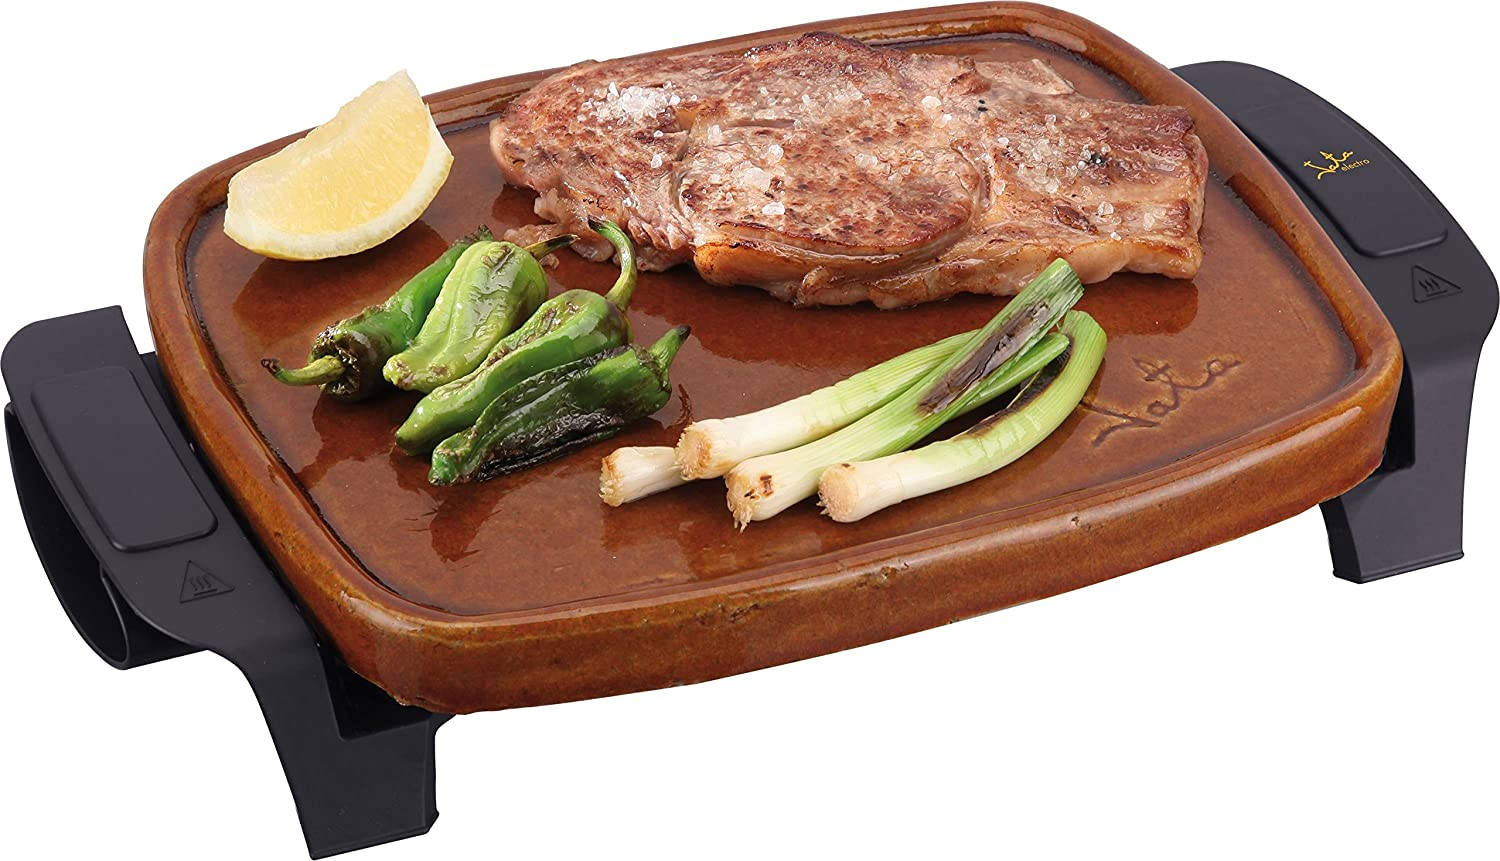 Jata GR208 Terracotta Roasting Griddle Grill: Amazon.co.uk ...